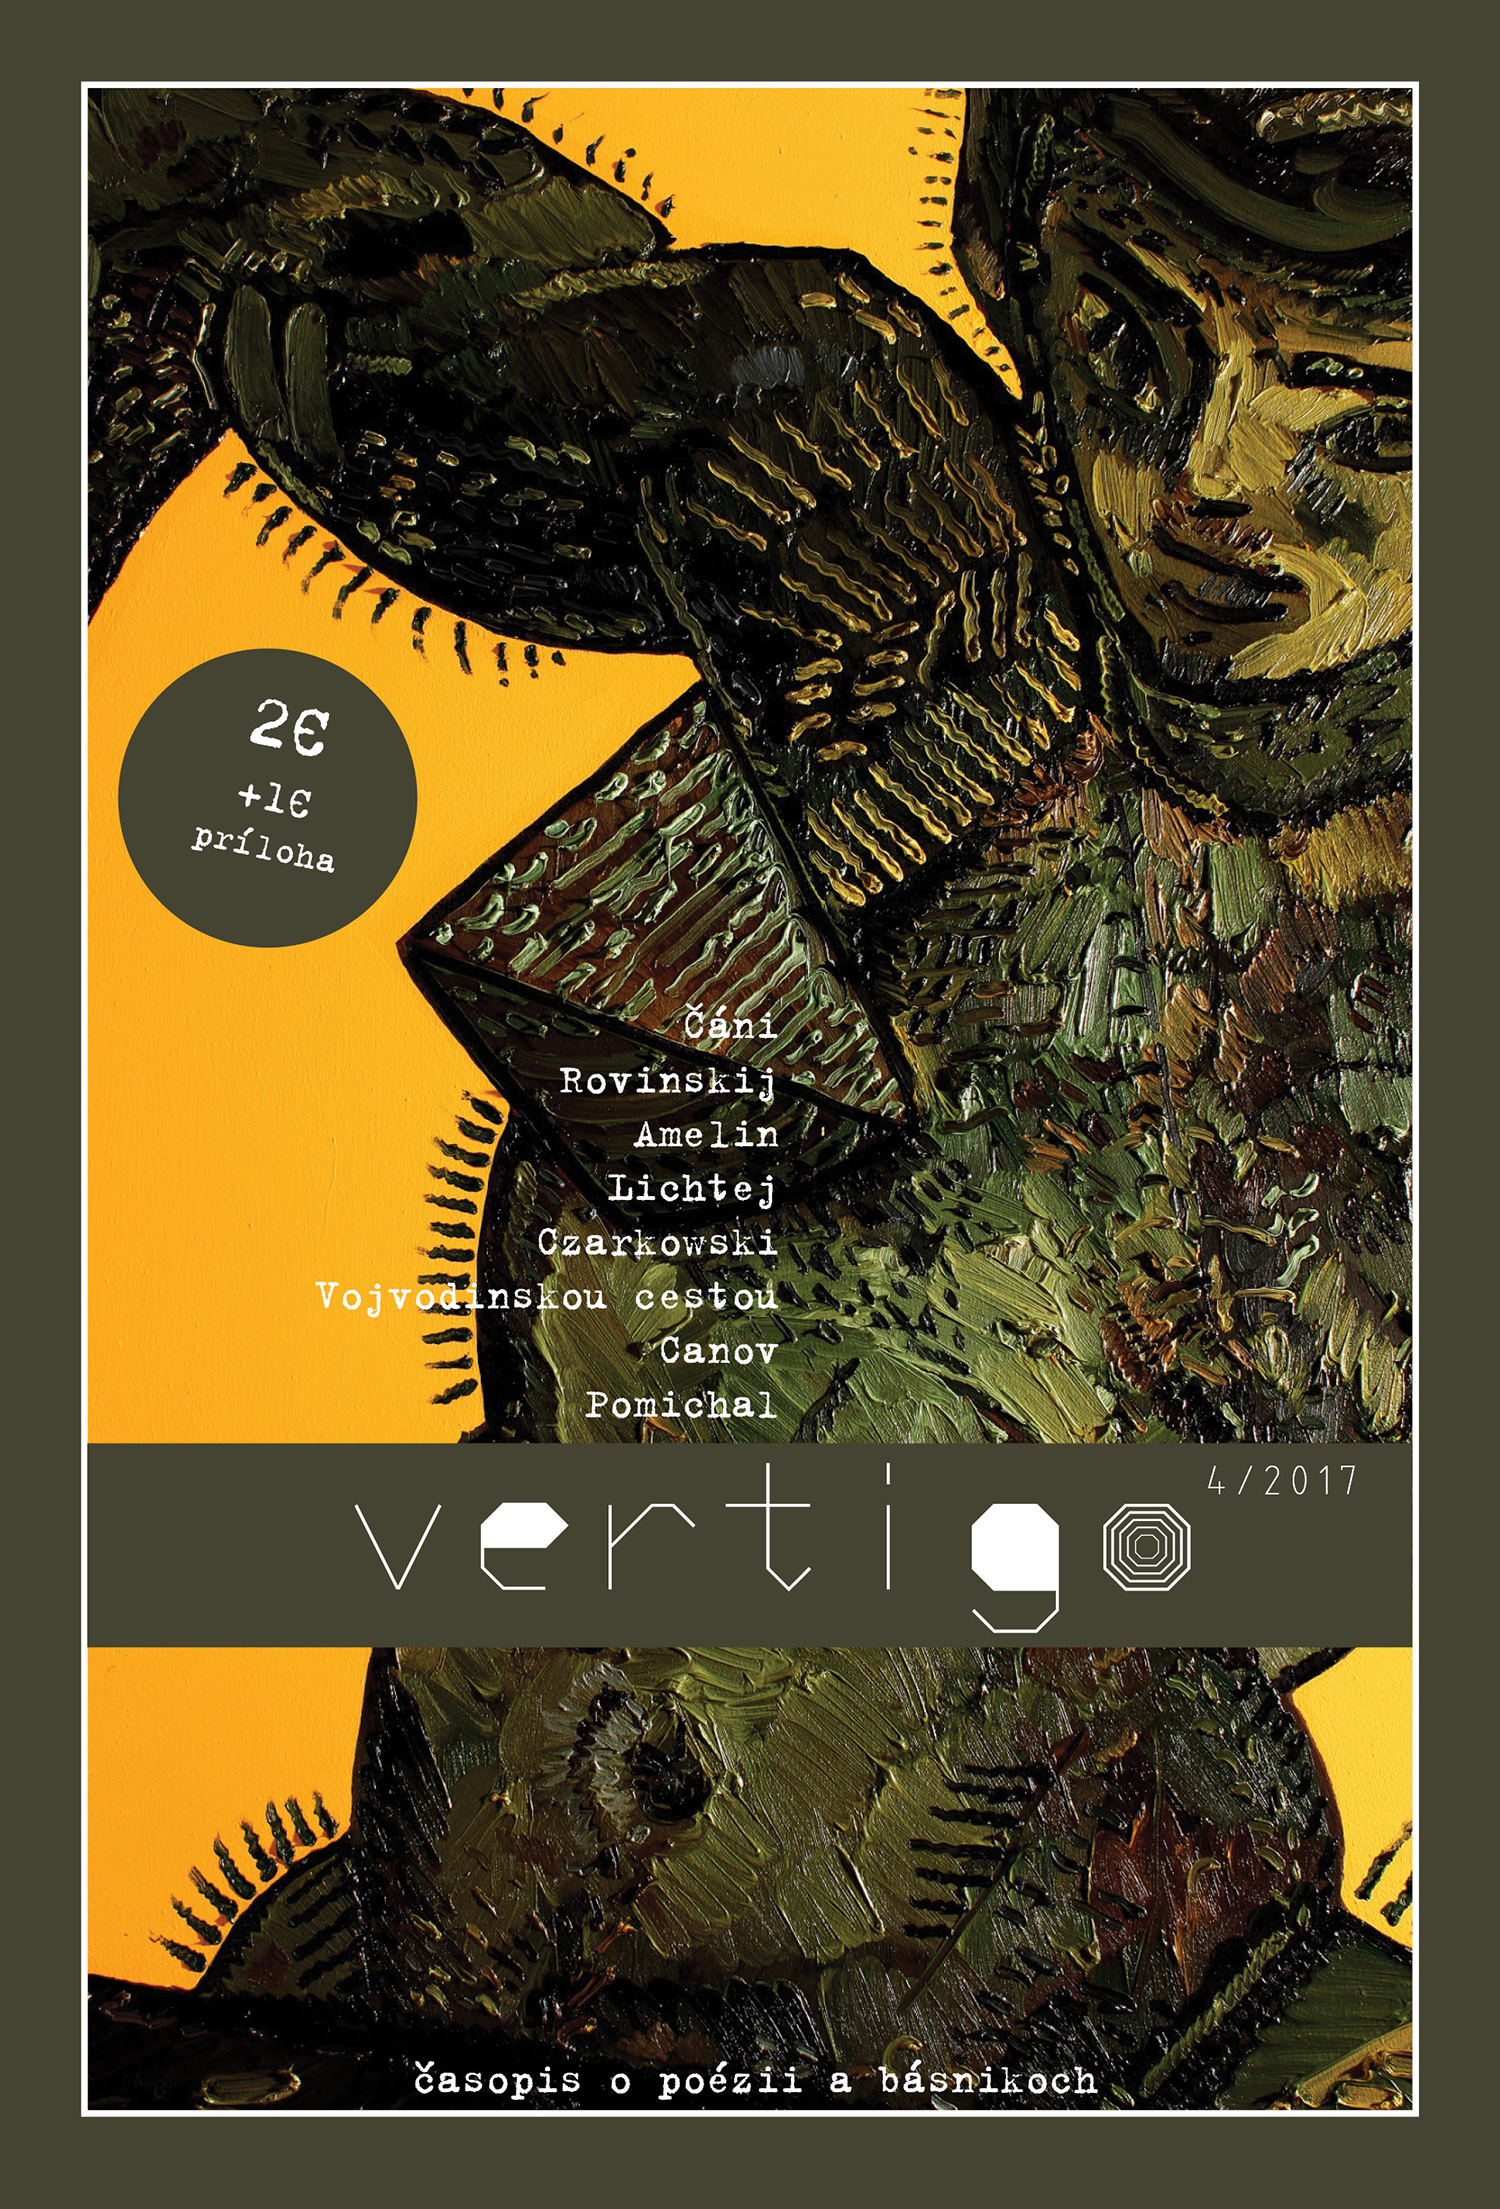 Magazine on literature and poets Vertigo, cover, since 2013